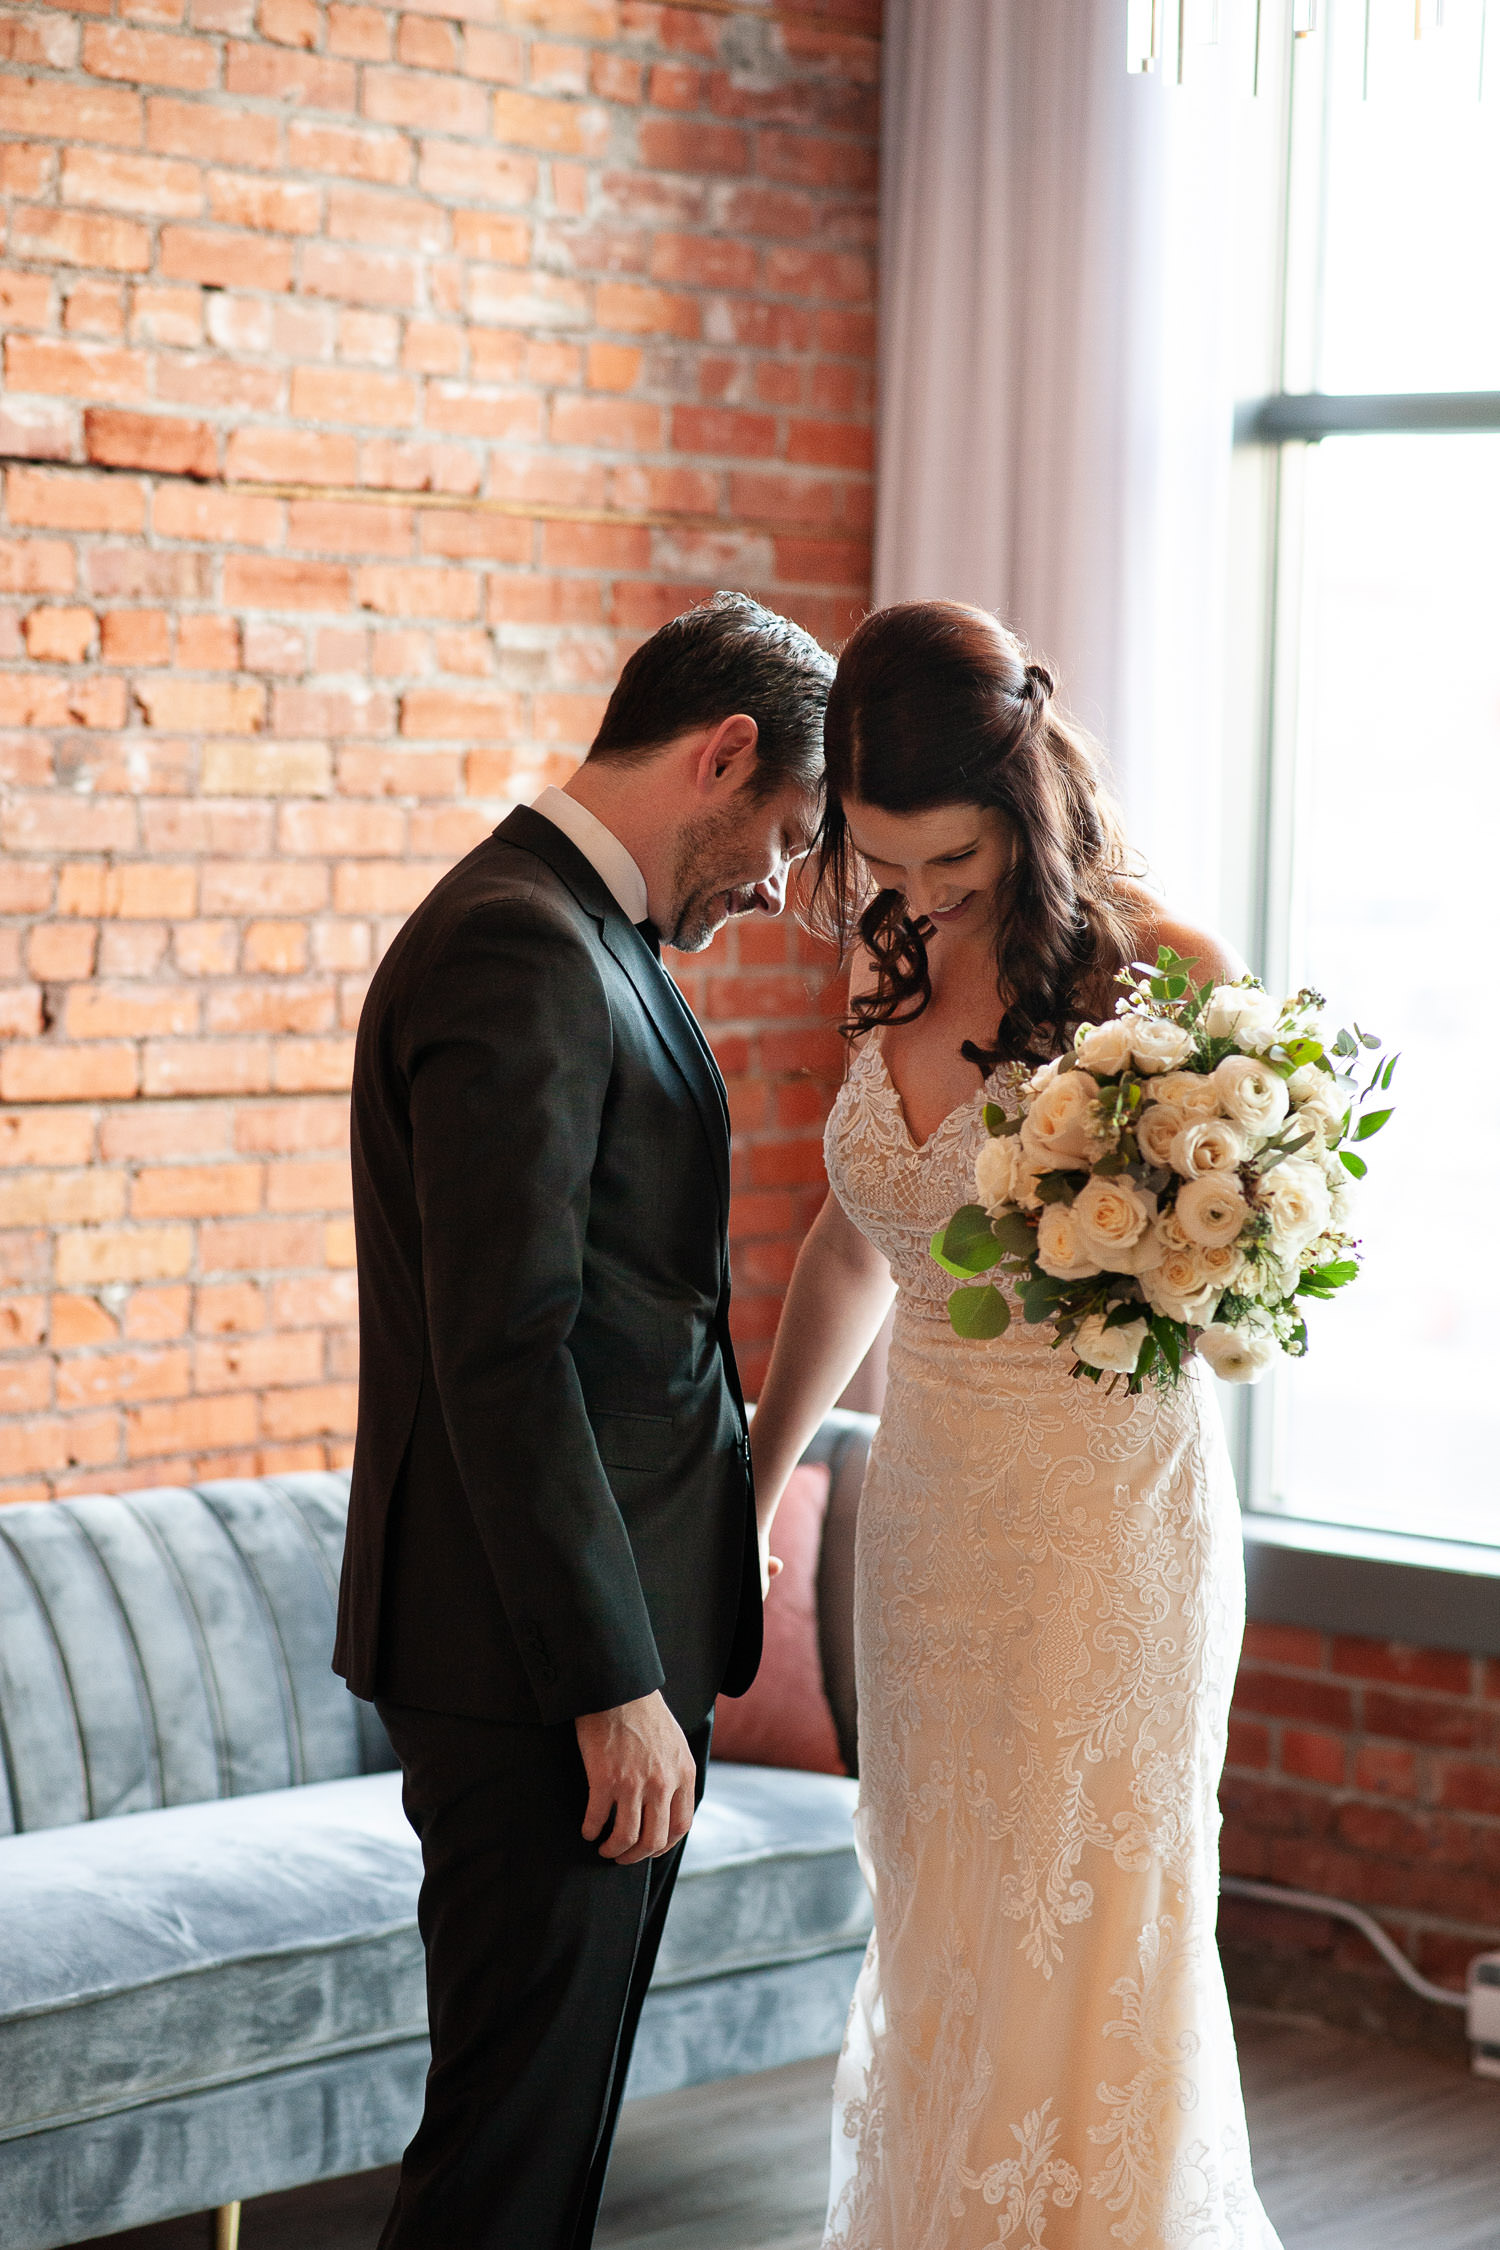 Intimate moment during first look at Venue 308 captured by Tara Whittaker Photography